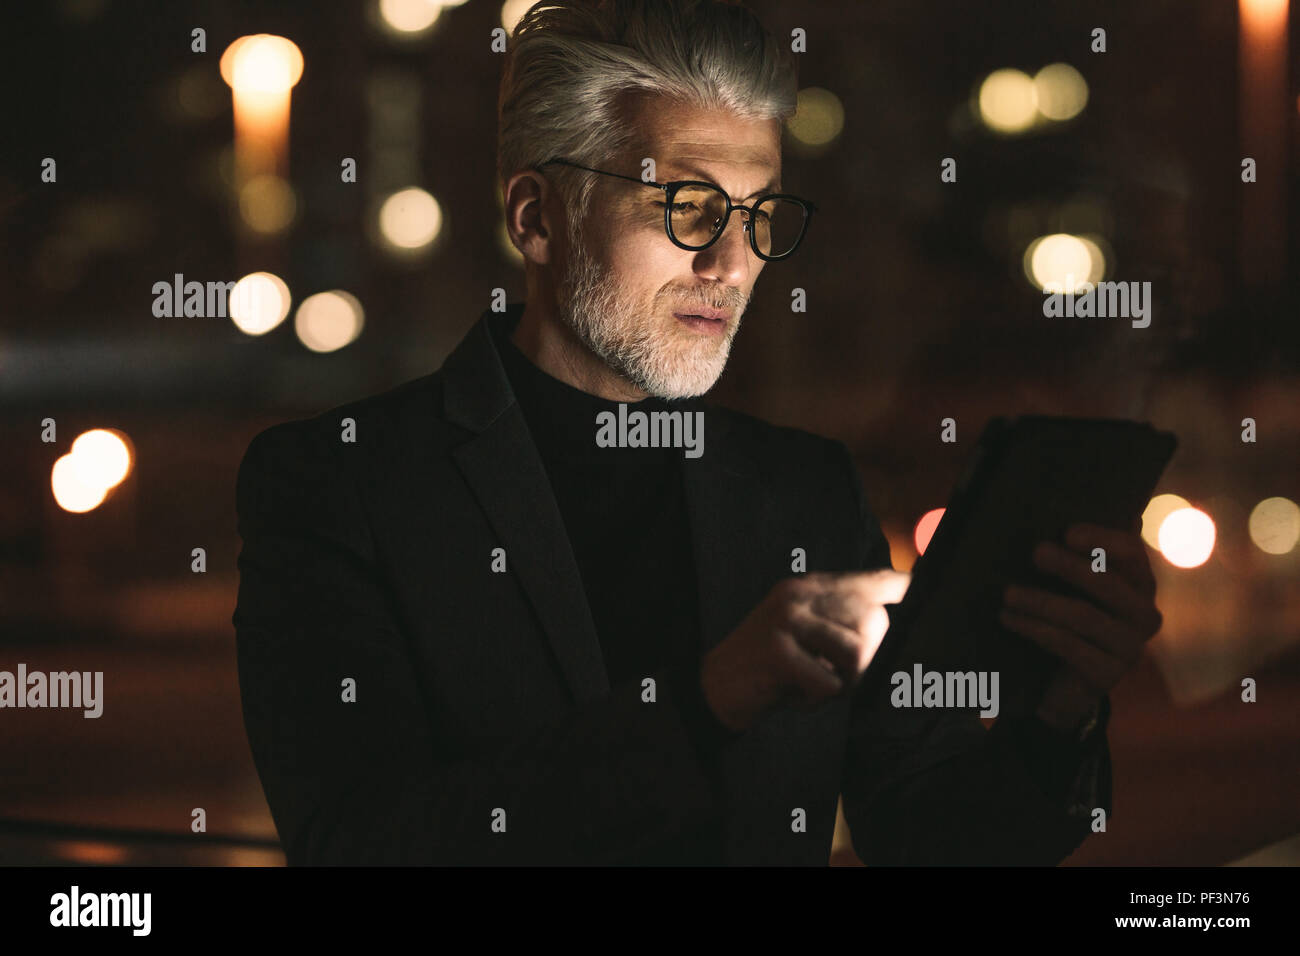 Senior business associate working on tablet computer late night in office. Mature man working overtime in office. Stock Photo